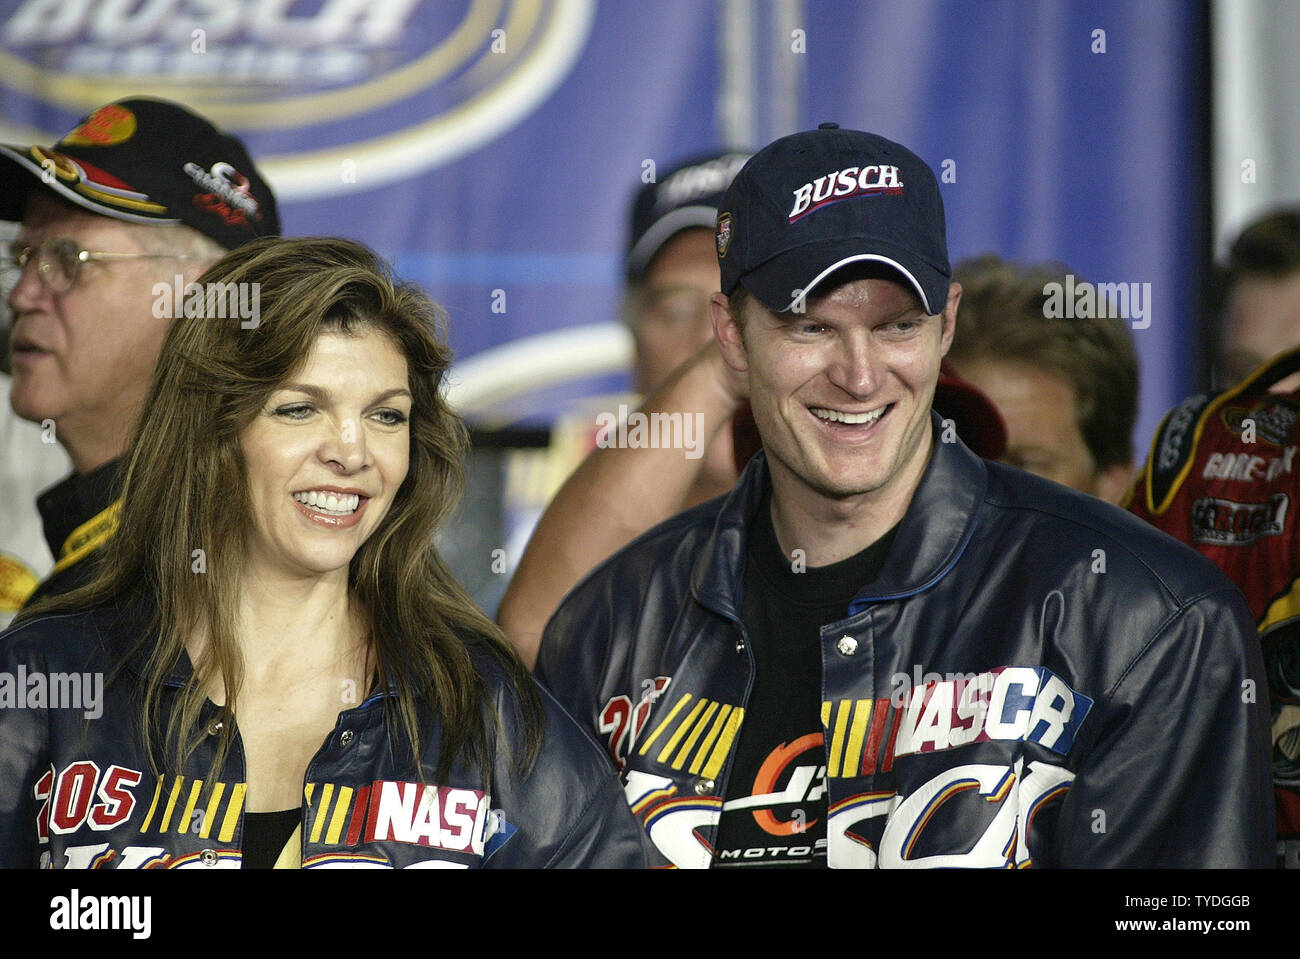 Teresa Earnhardt High Resolution Stock Photography And Images Alamy Genealogy for teresa earnhardt (houston) family tree on geni, with over 200 million profiles of ancestors and living relatives. https www alamy com martin truex jrs car owners teresa earnhardt and dale earnhardt jr celebrate winning the nascar busch series championship after truex finsihes 7th in the ford 300 race at the homestead miami speedway in homestead florida on november 19 2005 upi photochad cameron image257839243 html